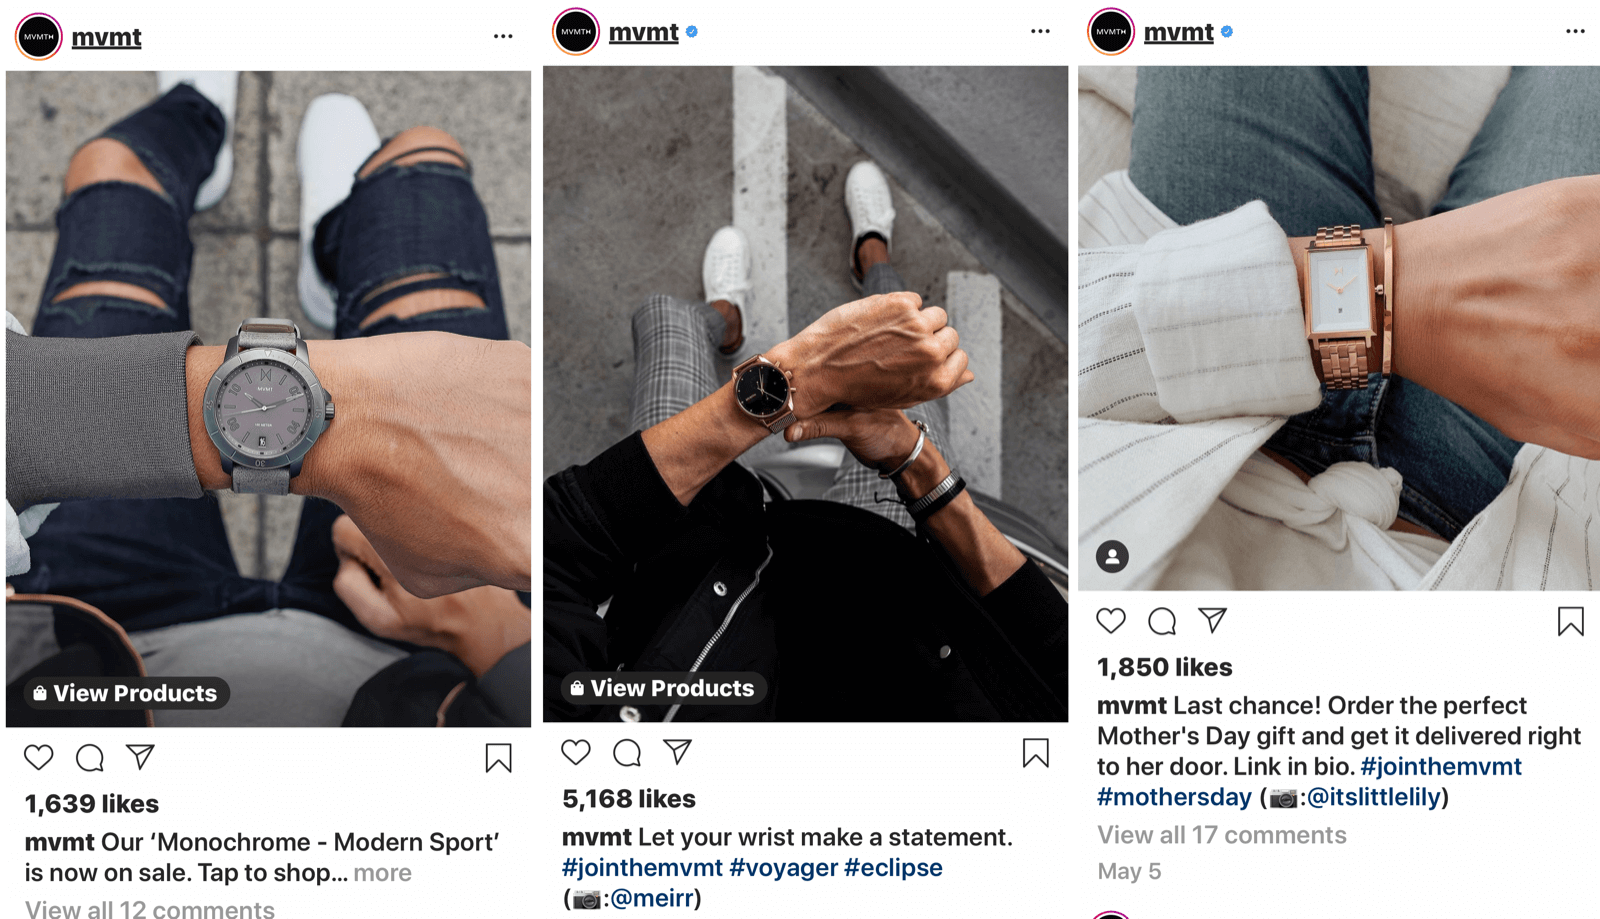 instagram feed posts with unique camera angle